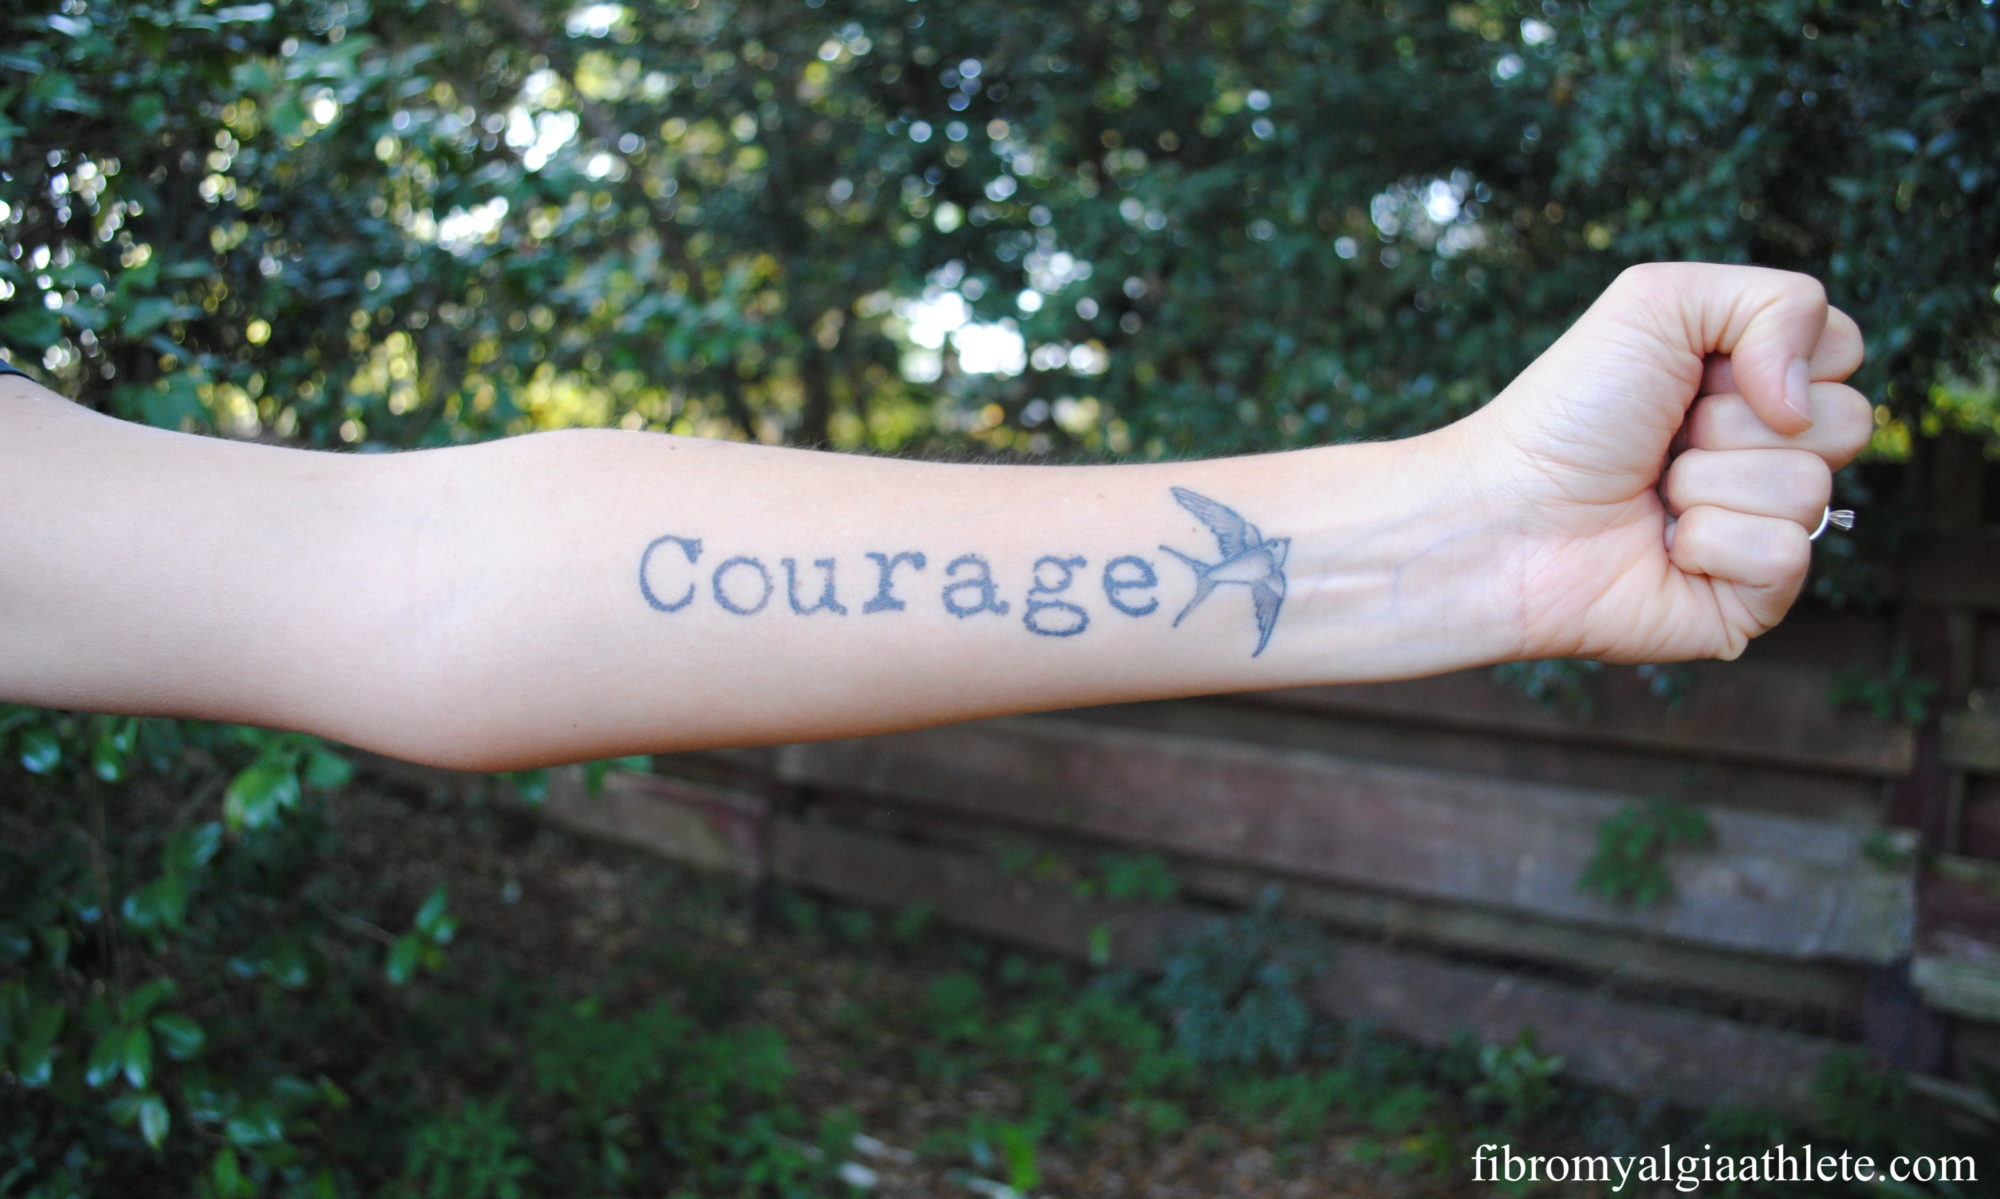 Fibromyalgia Athlete